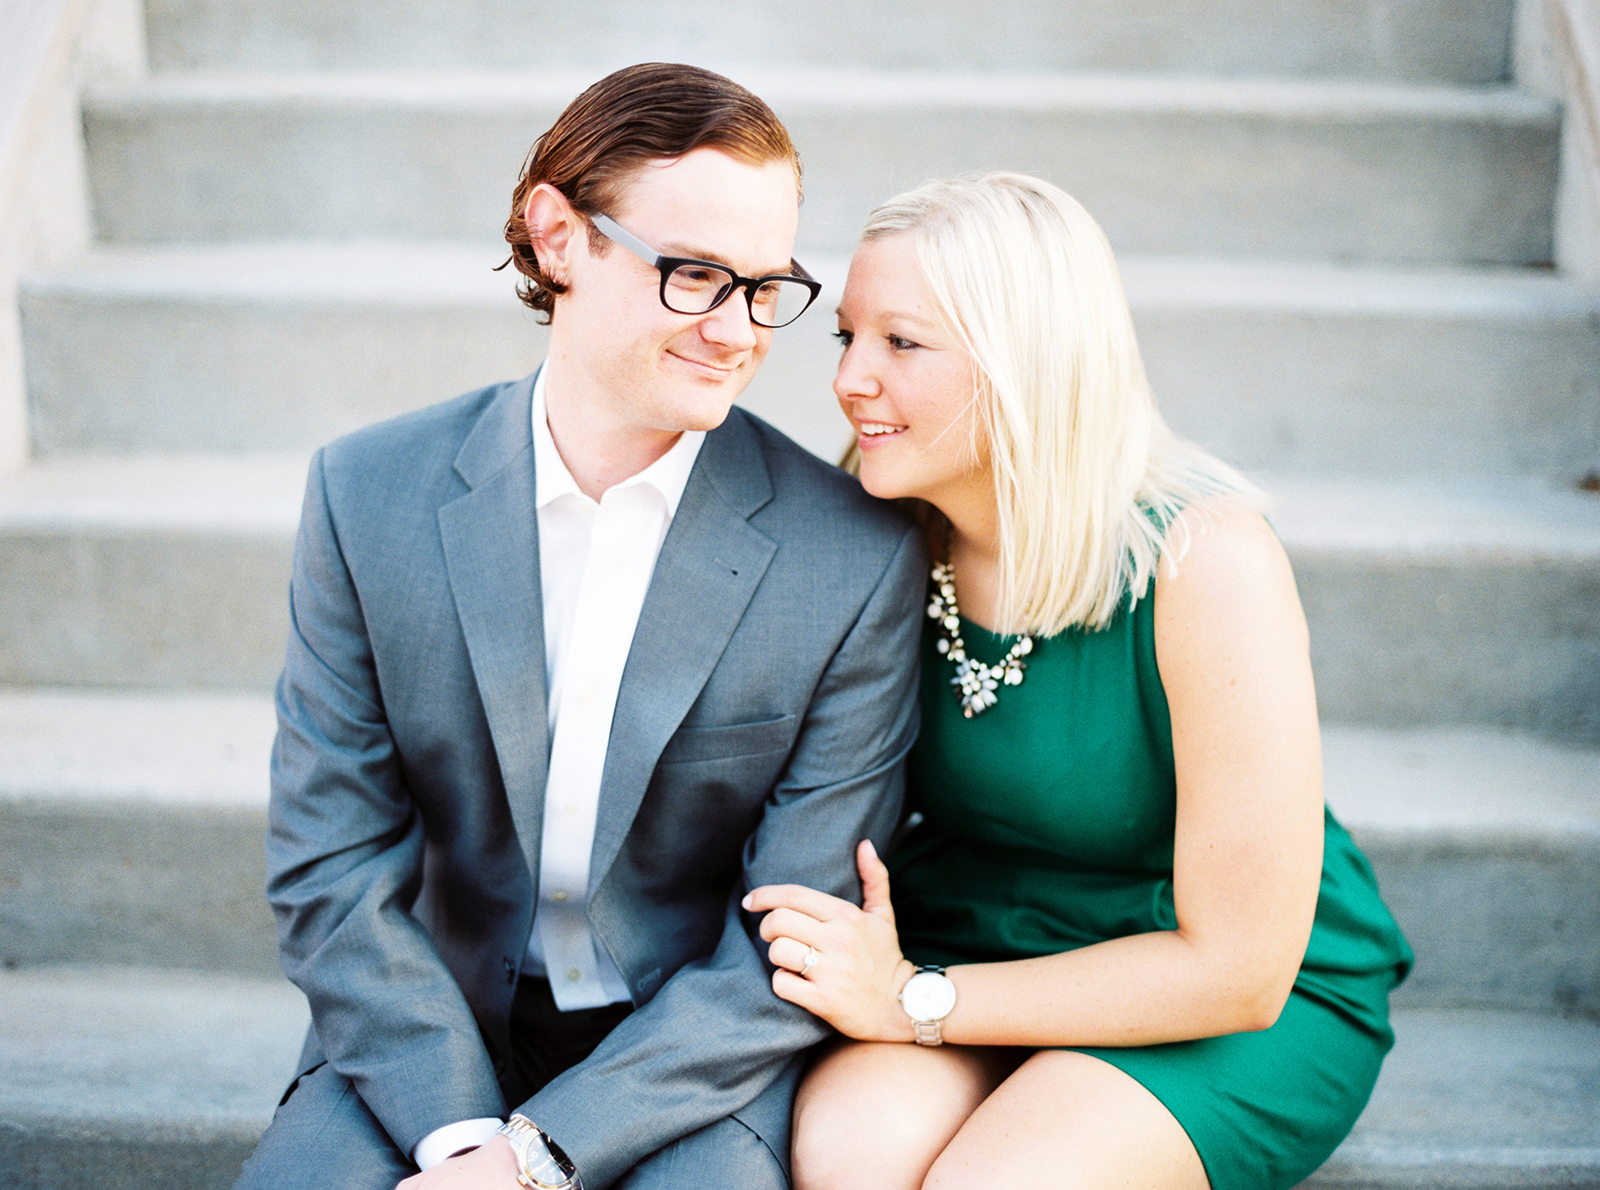 Lafayette Park Engagement Session by Oldani Photography St. Louis Wedding Photographers 45.jpg